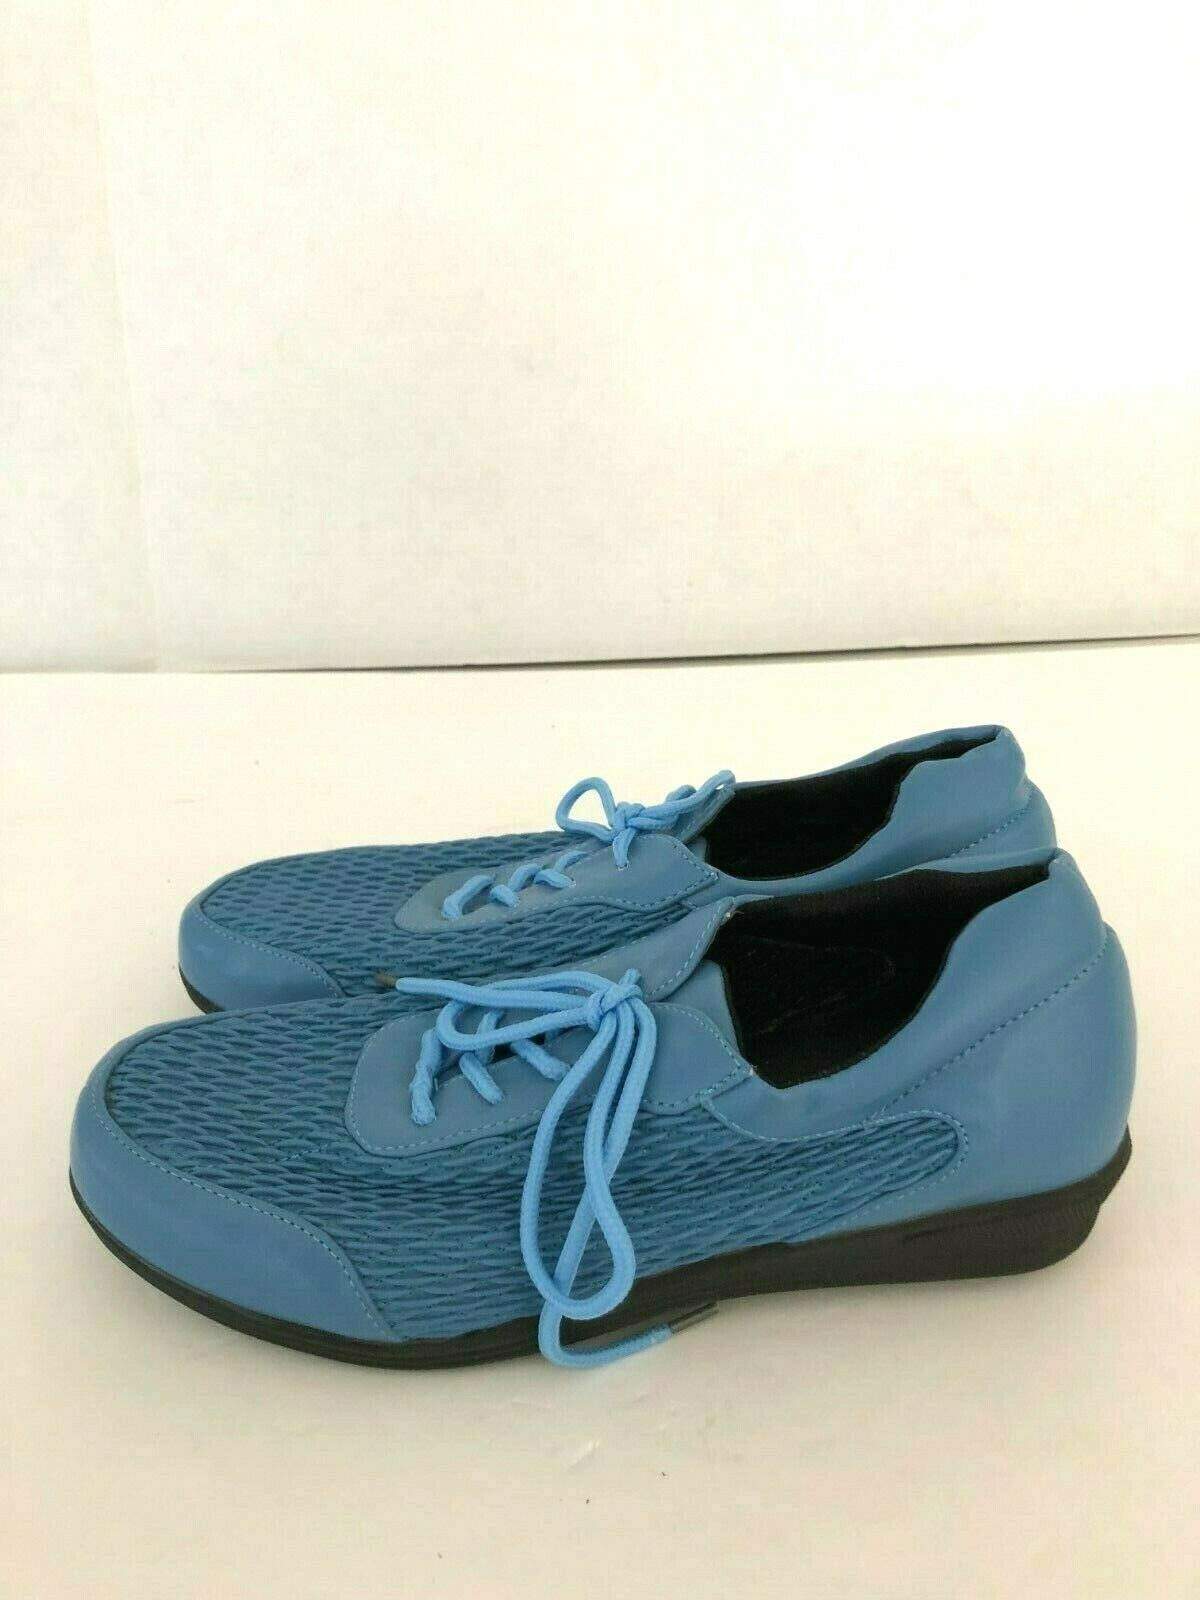 Beacon Women's Size 6.5 Stretch N Form Shoes Blue Lace-Up Comfort